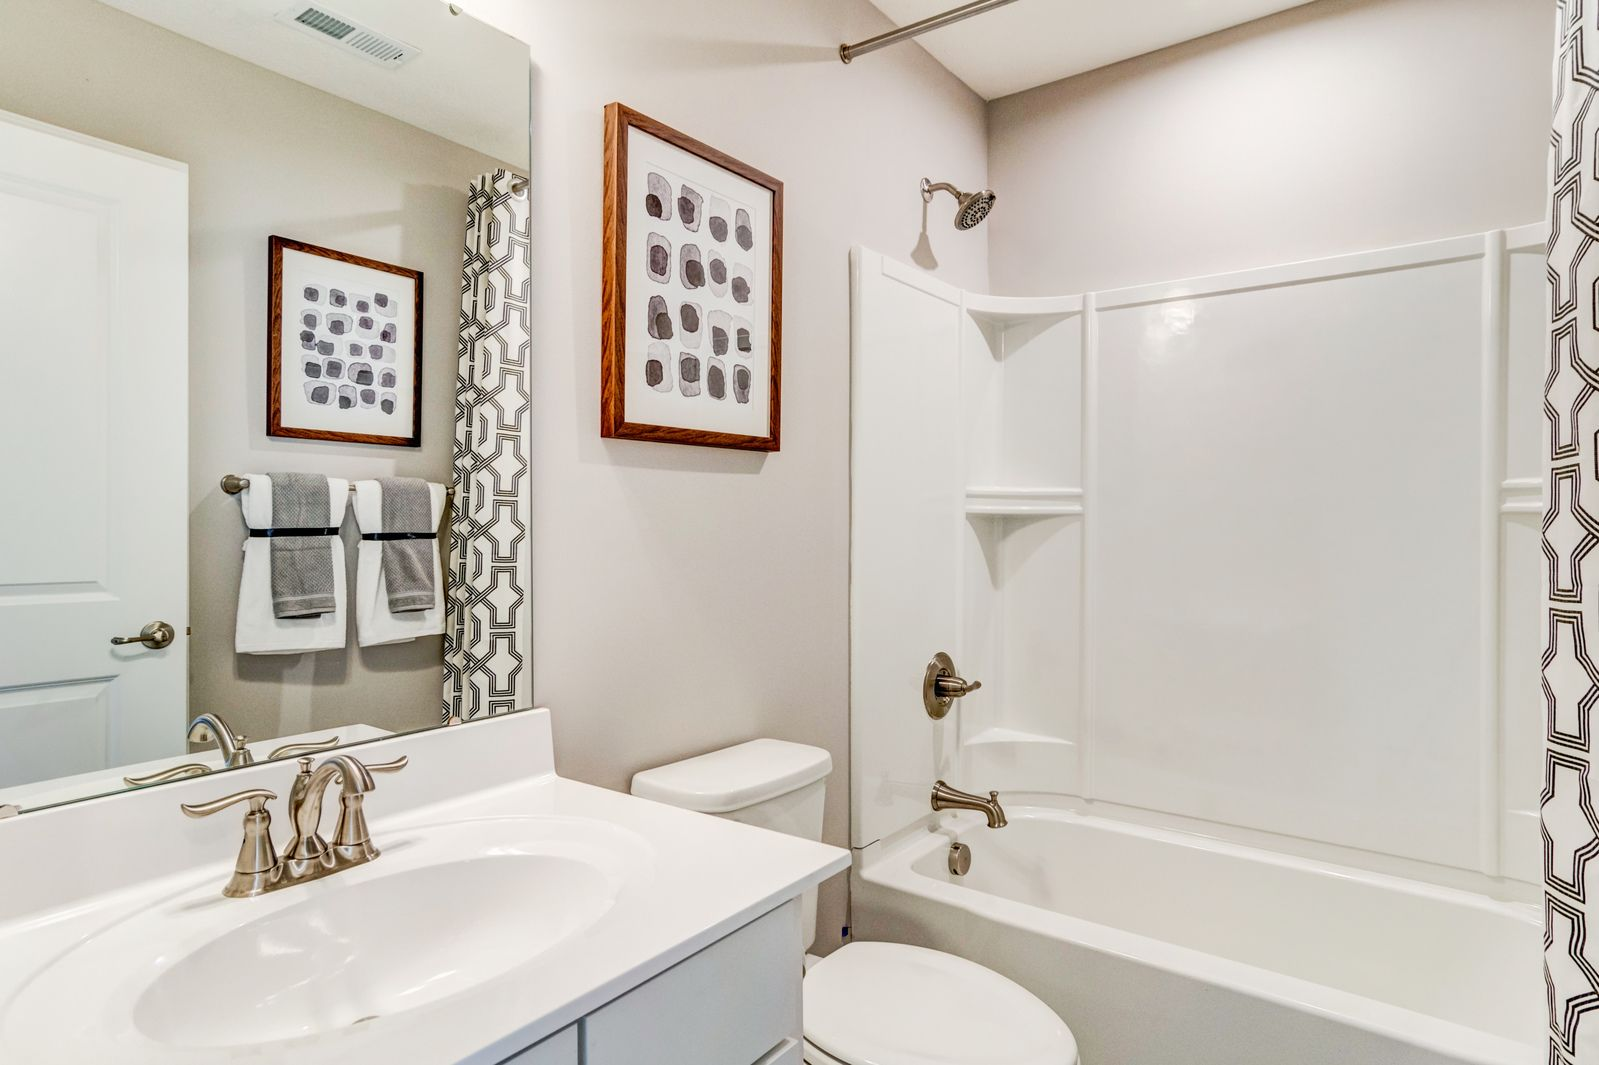 Bathroom featured in the Beethoven Front 1-Car Garage By Ryan Homes in Baltimore, MD